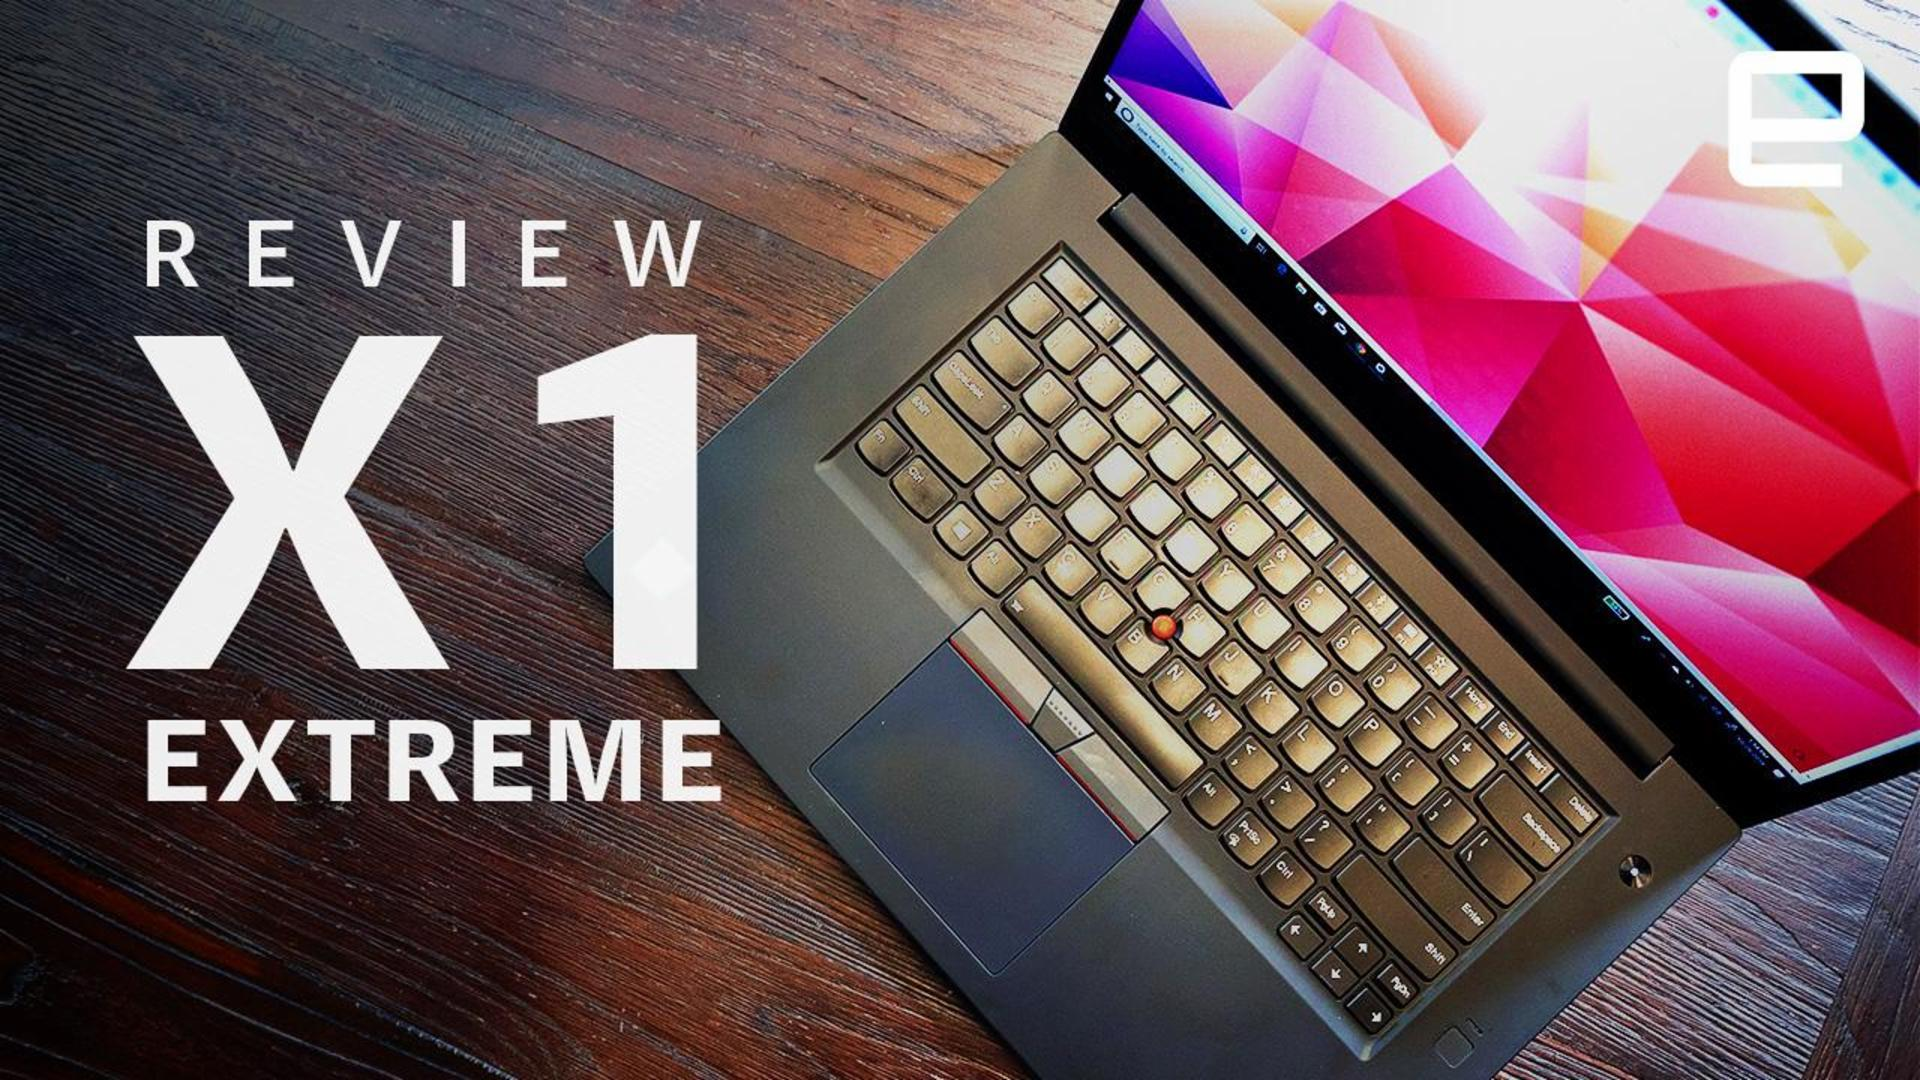 ThinkPad X1 Extreme review: Big on power and price